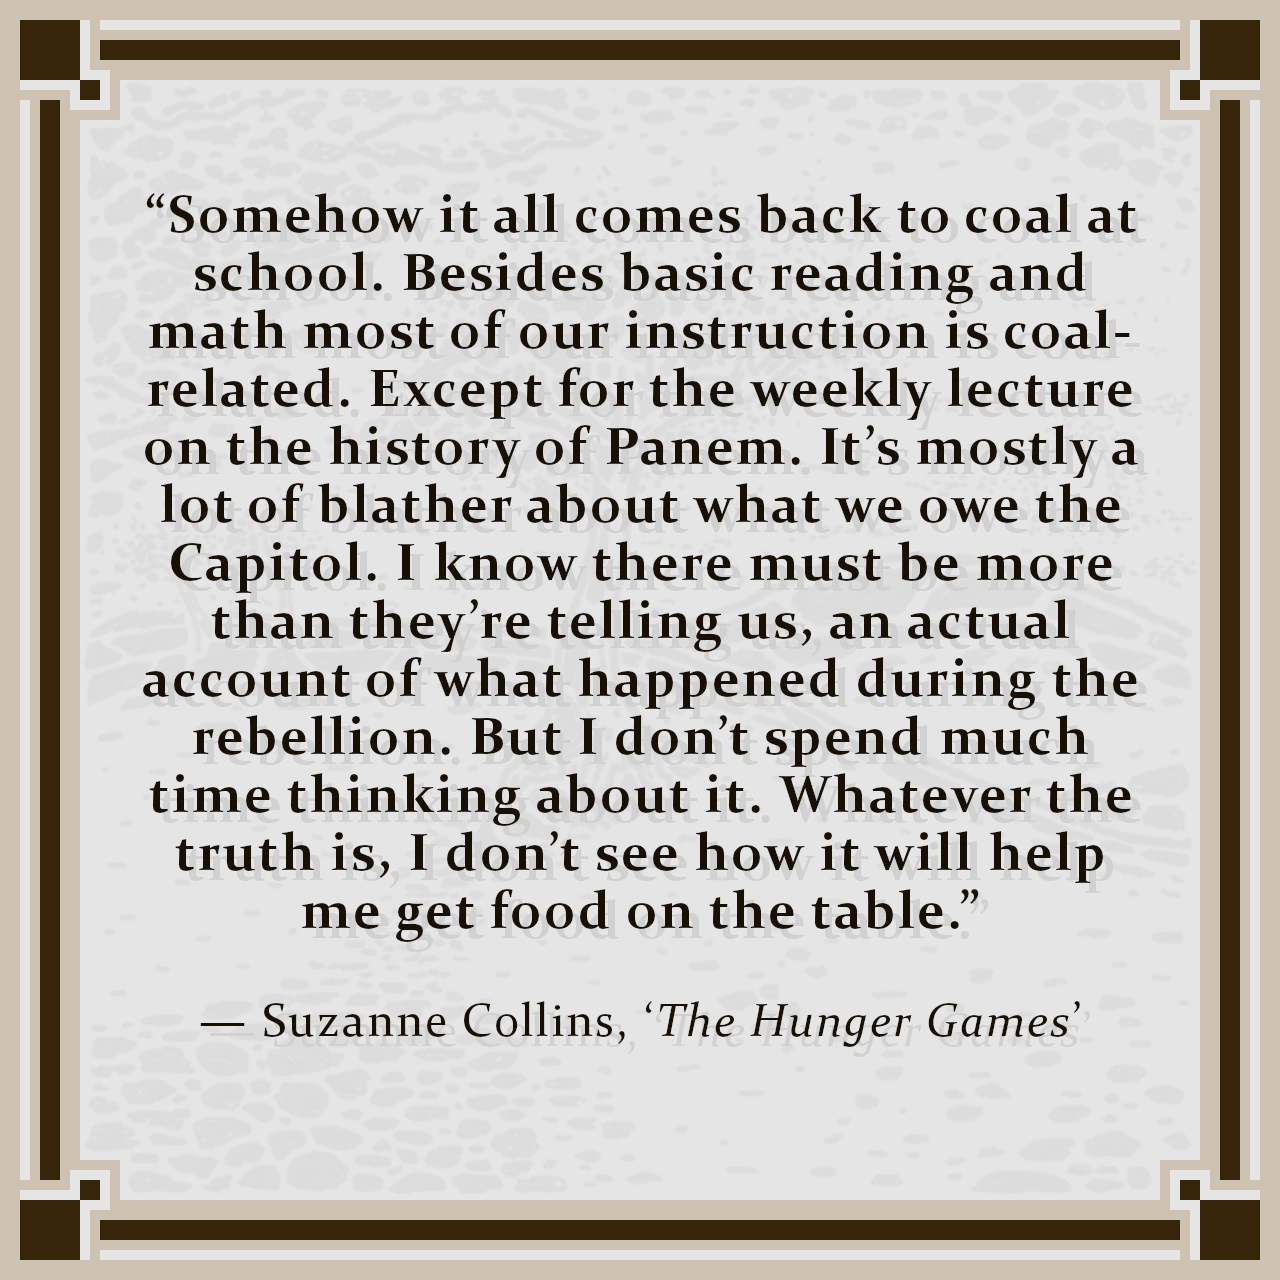 """""""Somehow it all comes back to coal at school. Besides basic reading and math most of our instruction is coal-related. Except for the weekly lecture on the history of Panem. It's mostly a lot of blather about what we owe the Capitol. I know there must be more than they're telling us, an actual account of what happened during the rebellion. But I don't spend much time thinking about it. Whatever the truth is, I don't see how it will help me get food on the table."""" — Suzanne Collins, 'The Hunger Games'"""